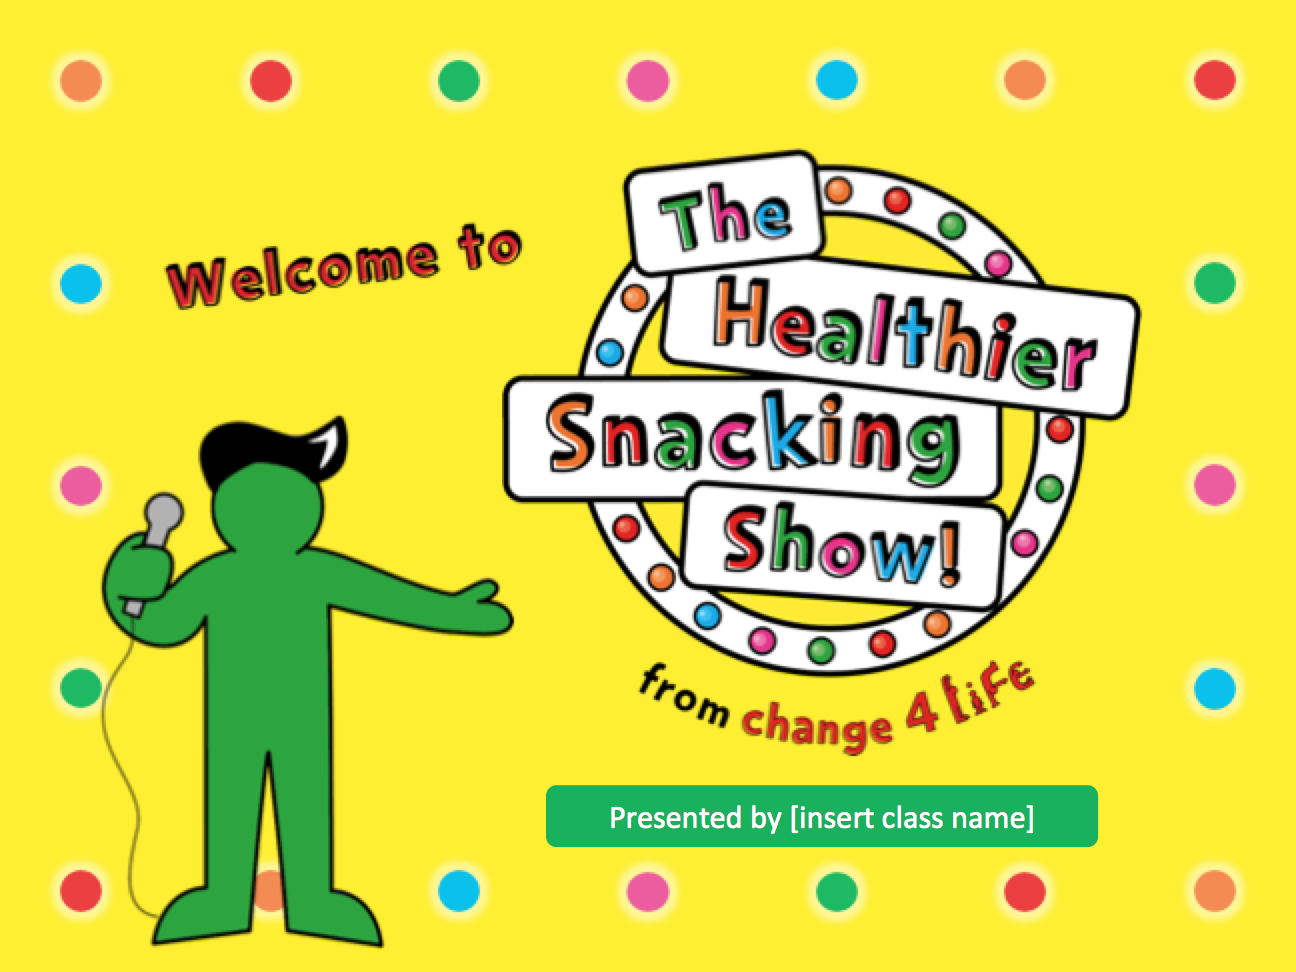 The Healthier Snacking show for reception